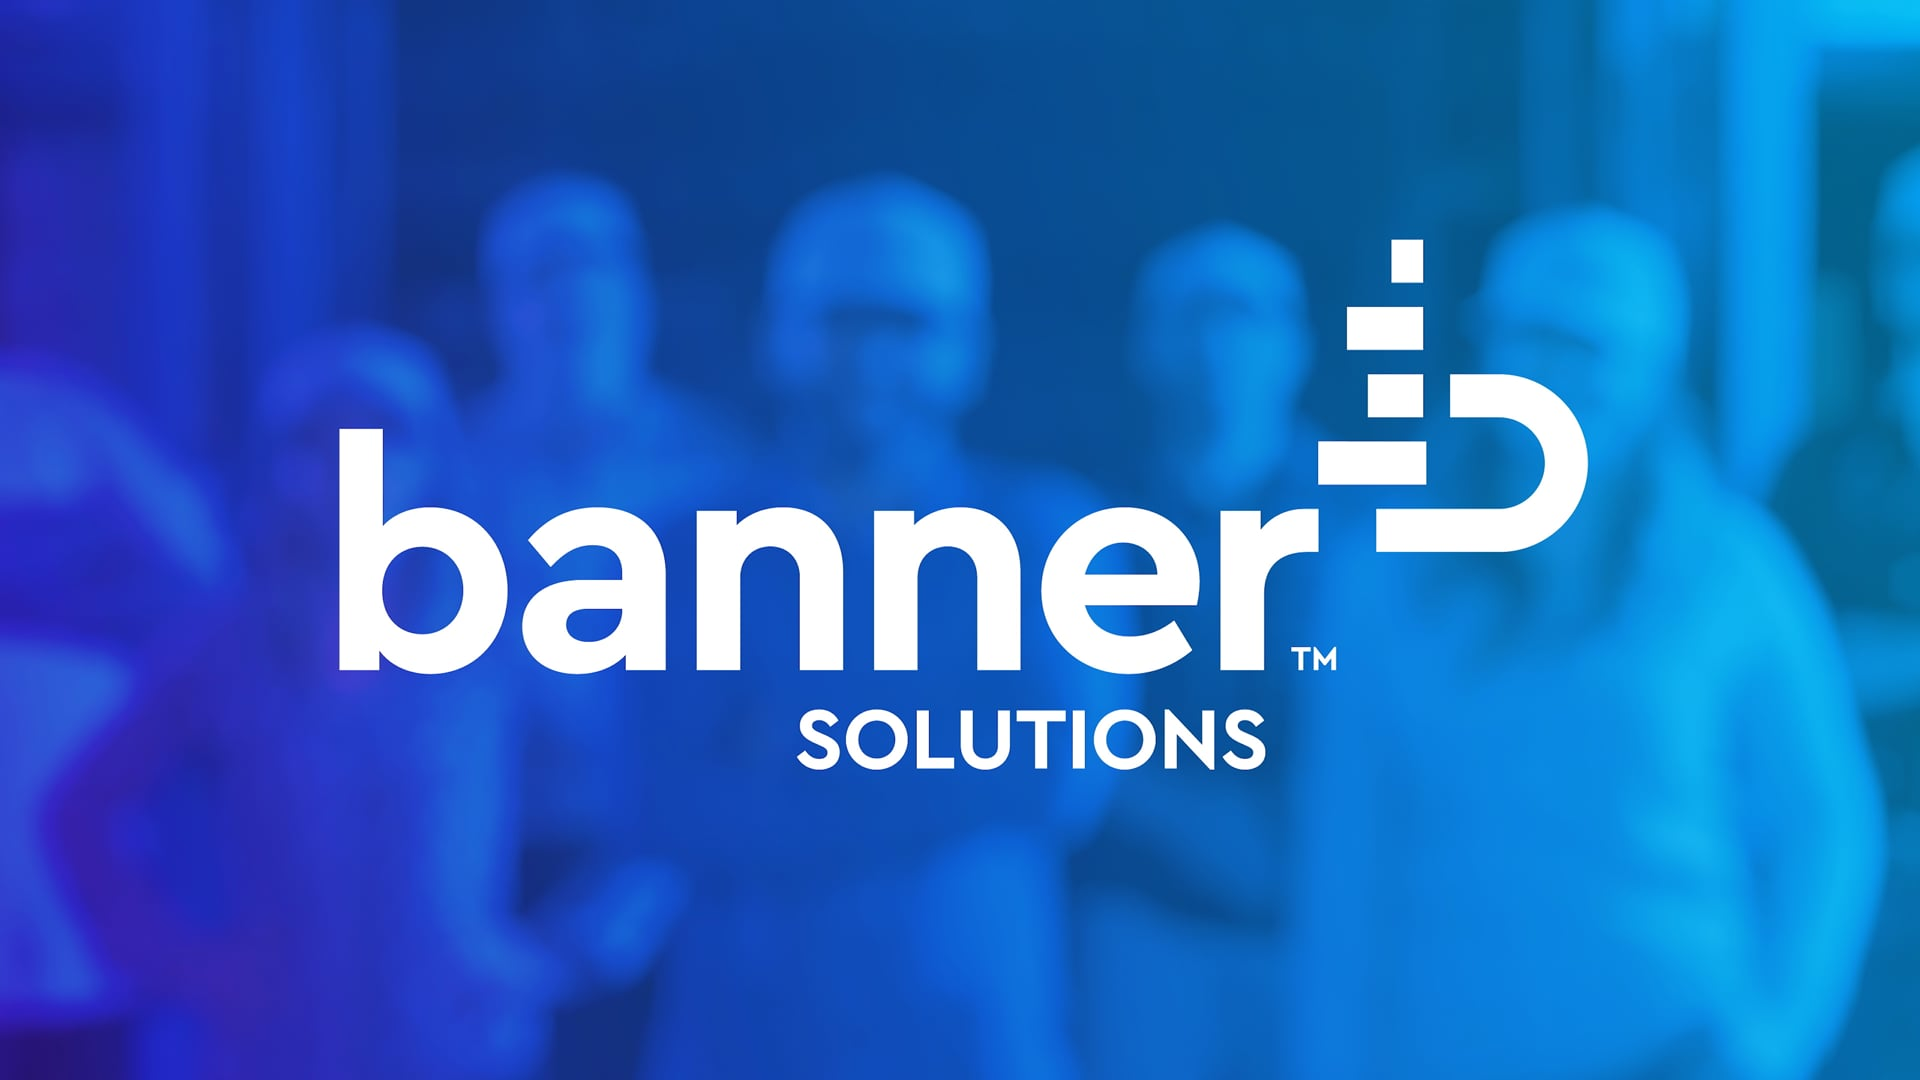 Banner Solutions Brand Video